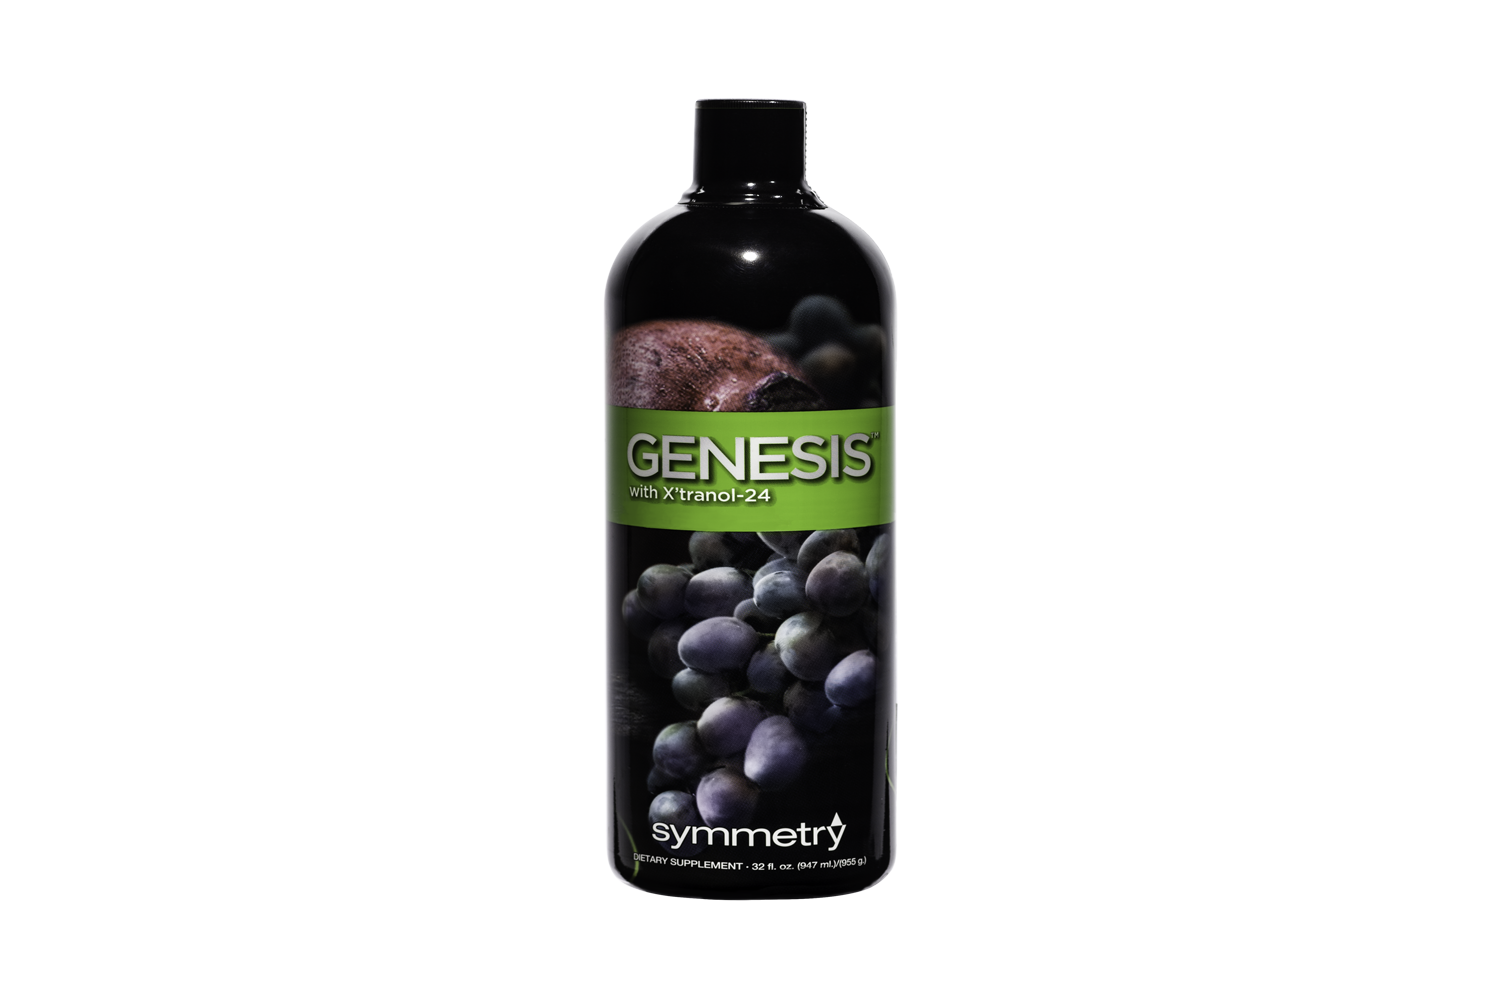 Purchase Genesis Bottle Now: Genesis™ - 32 fl.oz. bottle, aprox. 32 servings. All natural, Bible based nutritional supplement.